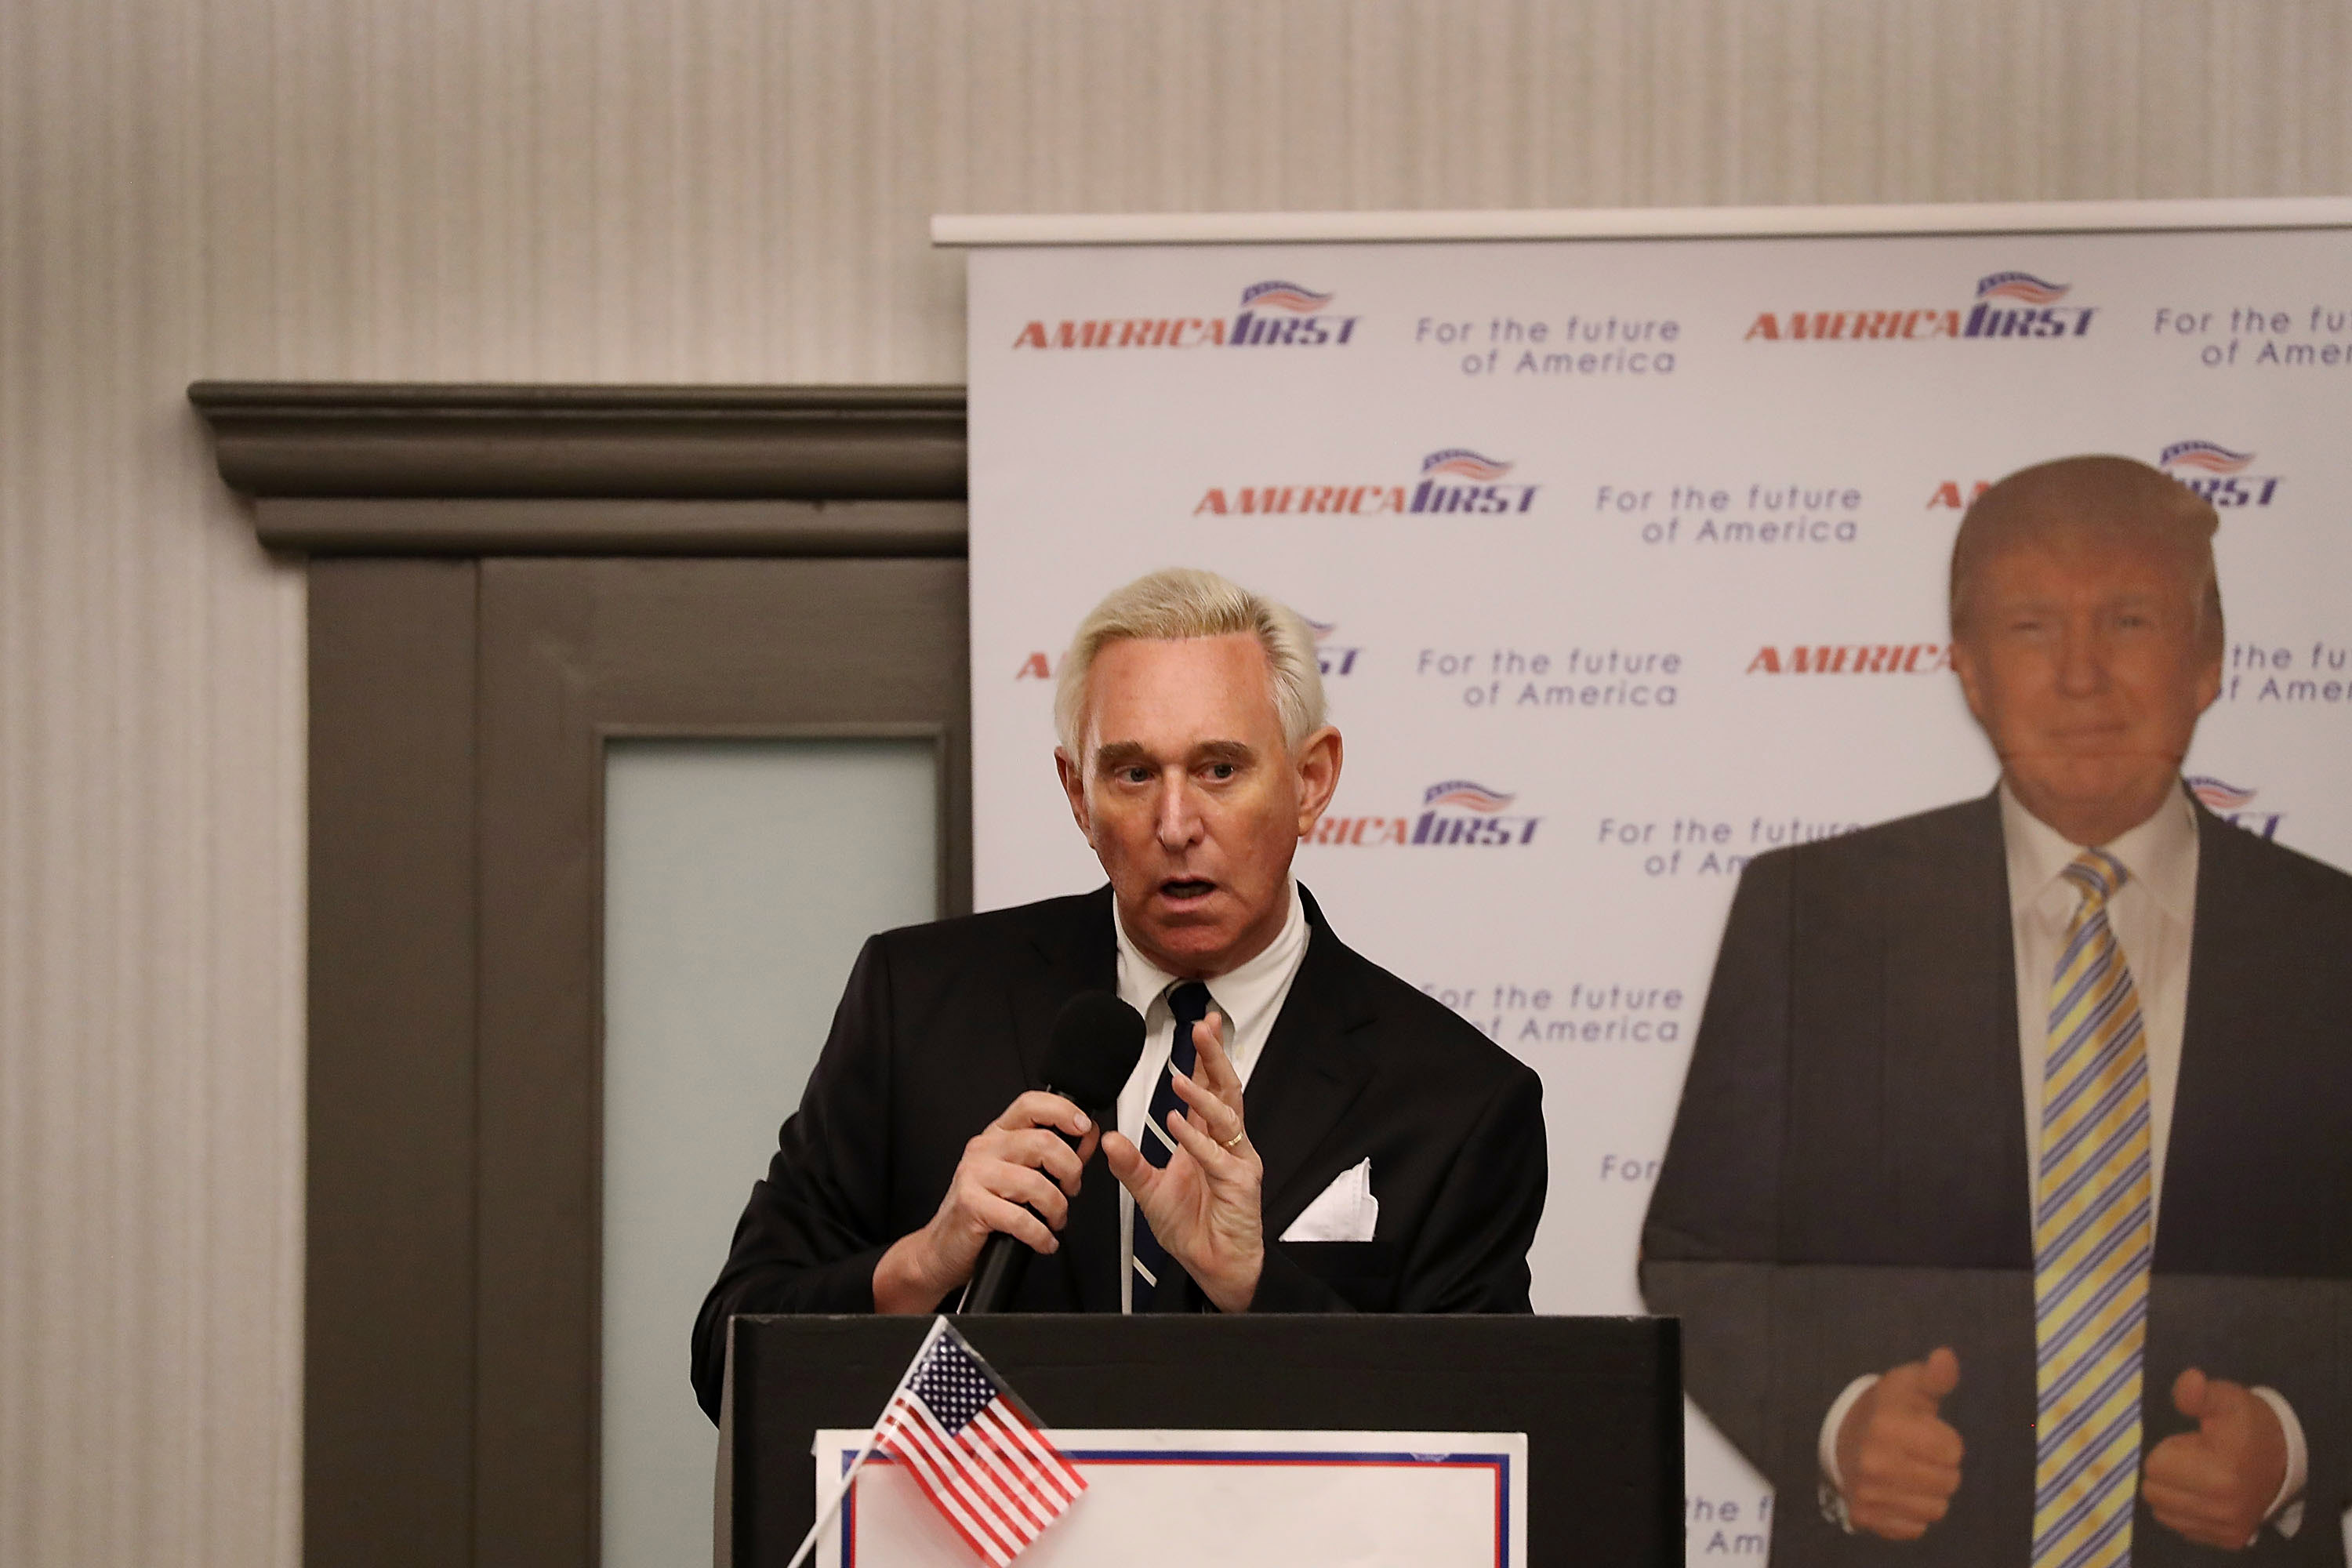 "BOCA RATON, FL - MARCH 21: Roger Stone, a longtime political adviser and friend to President Donald Trump, speaks before signing copies of his book ""The Making of the President 2016"" at the Boca Raton Marriott on March 21, 2017 in Boca Raton, Florida. The book delves into the 2016 presidential run by Donald Trump. (Photo by Joe Raedle/Getty Images)"